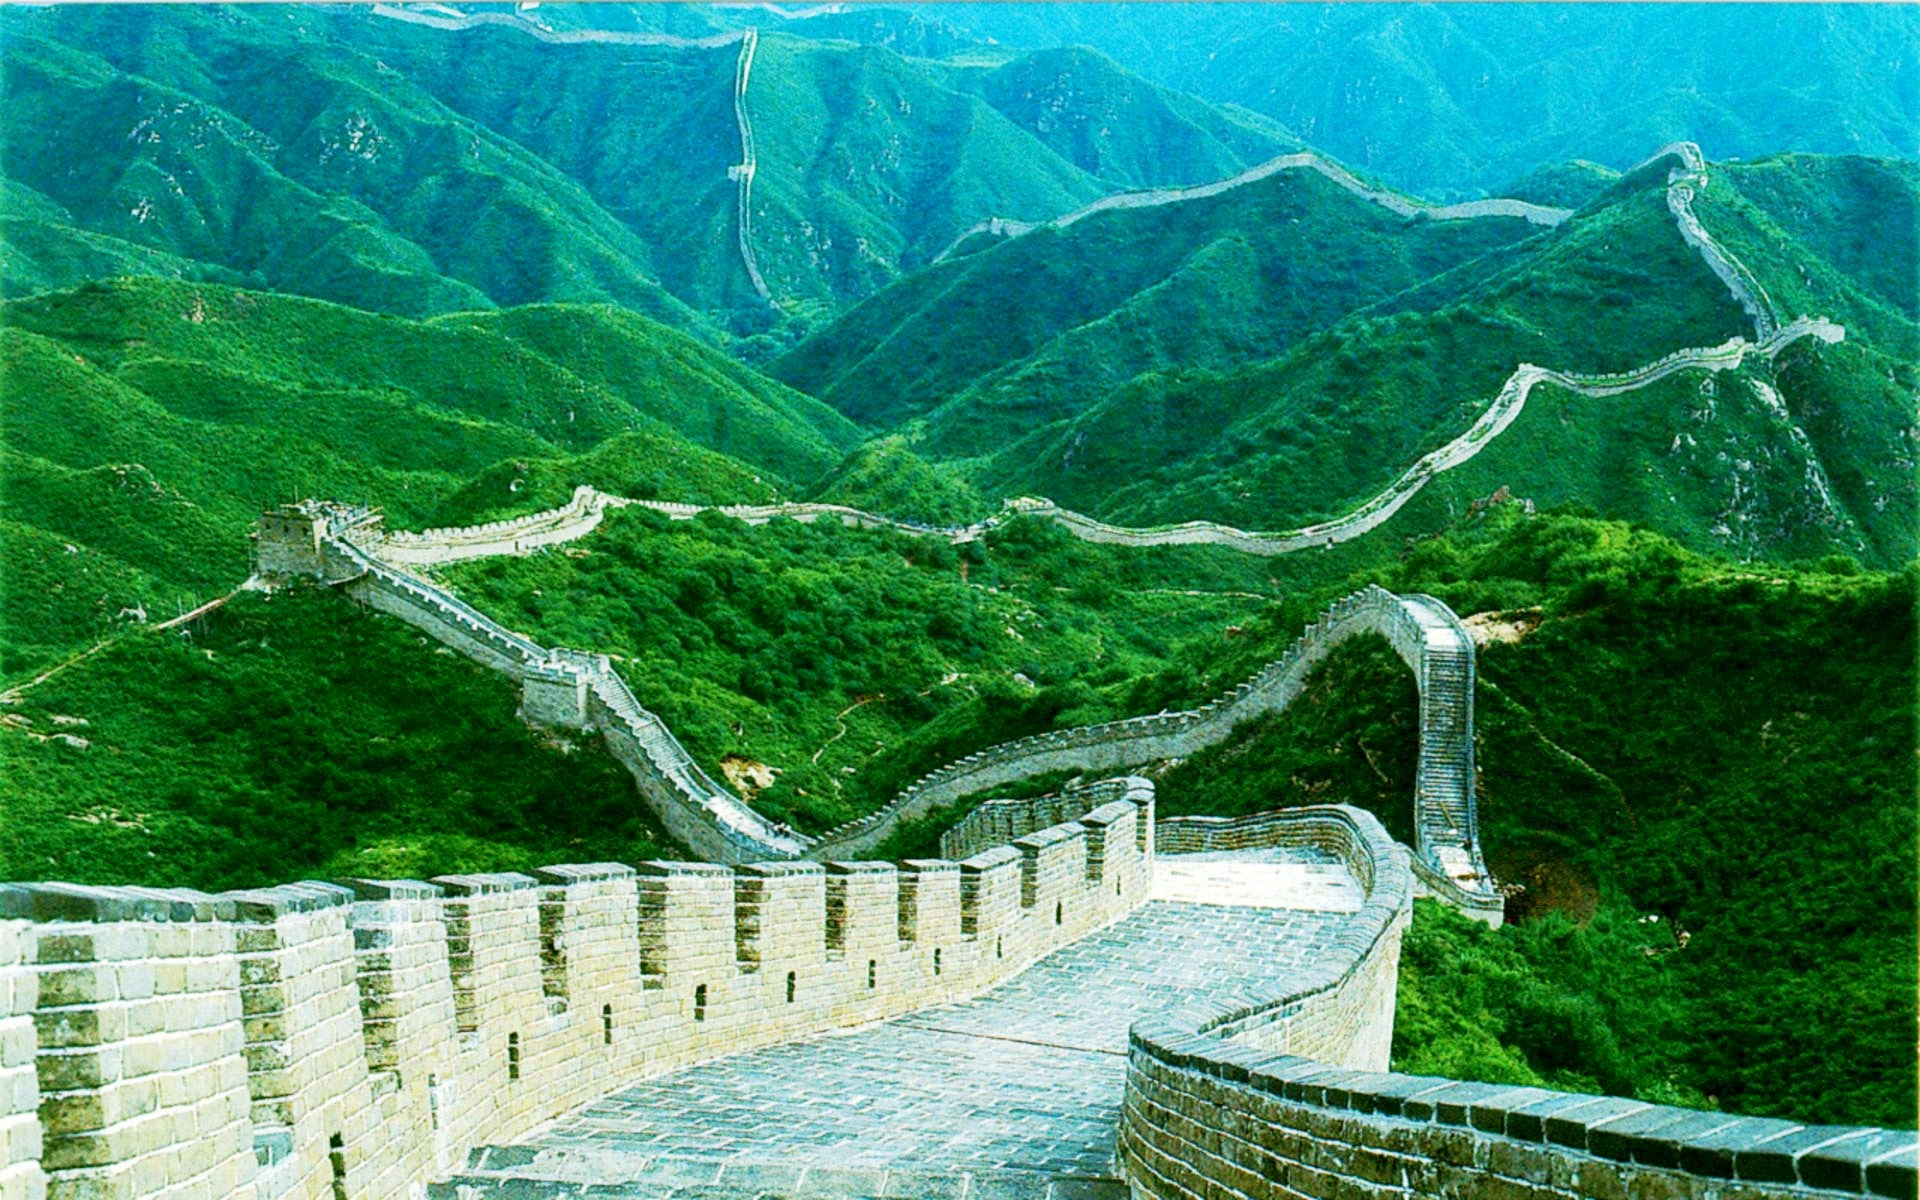 China wide wall full HD new wallpapers - New hd wallpaperNew hd